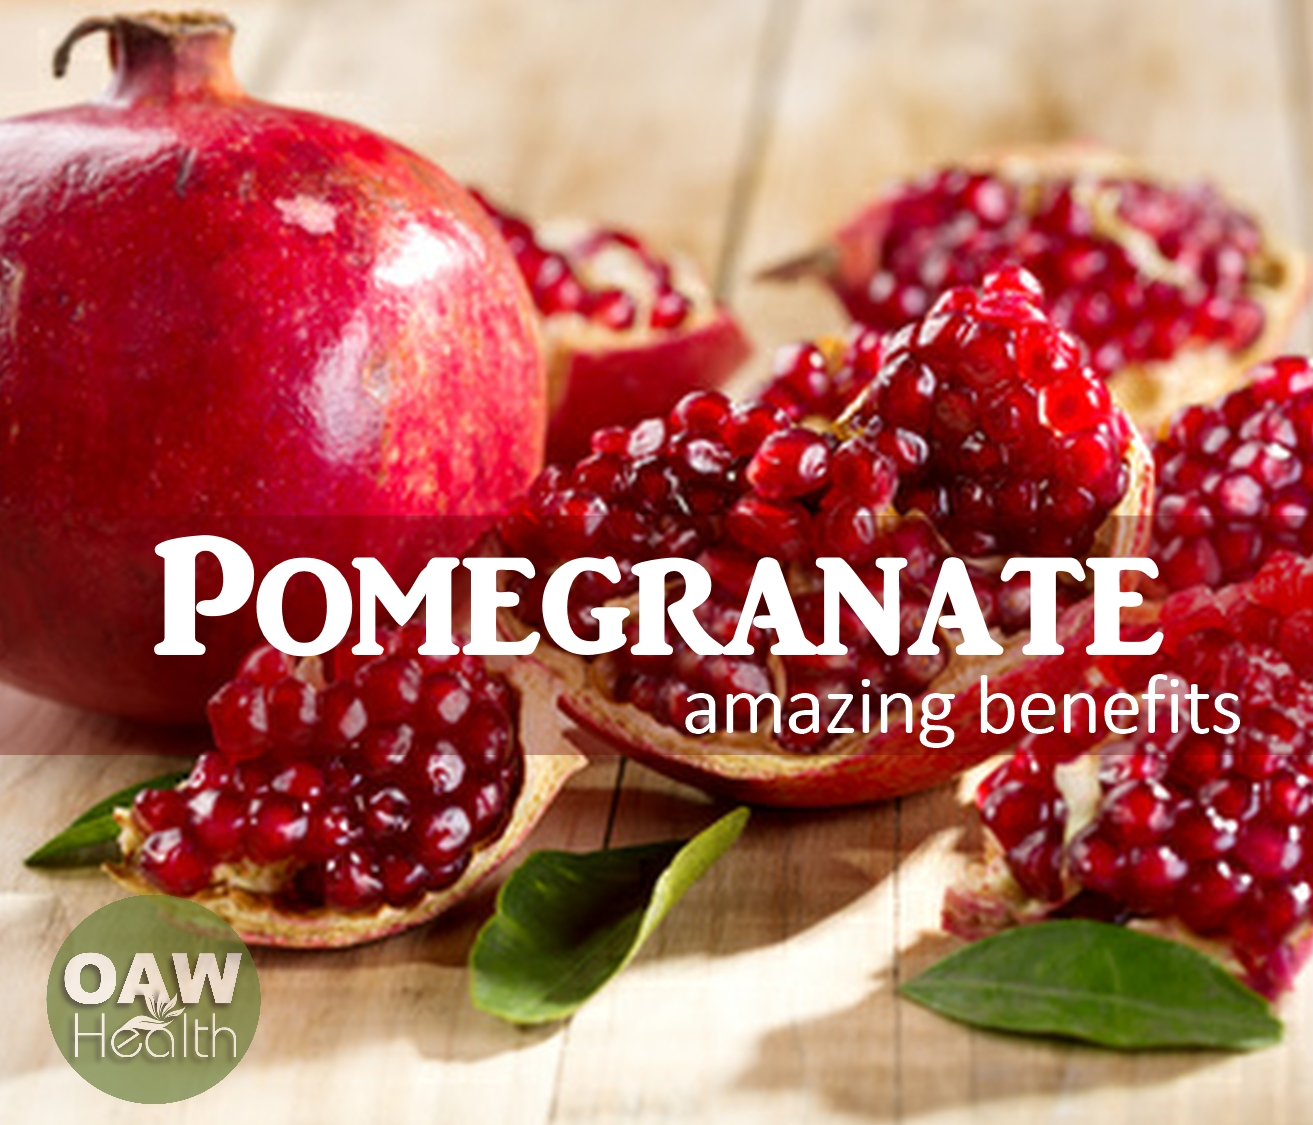 Amazing Benefits of Pomegranate